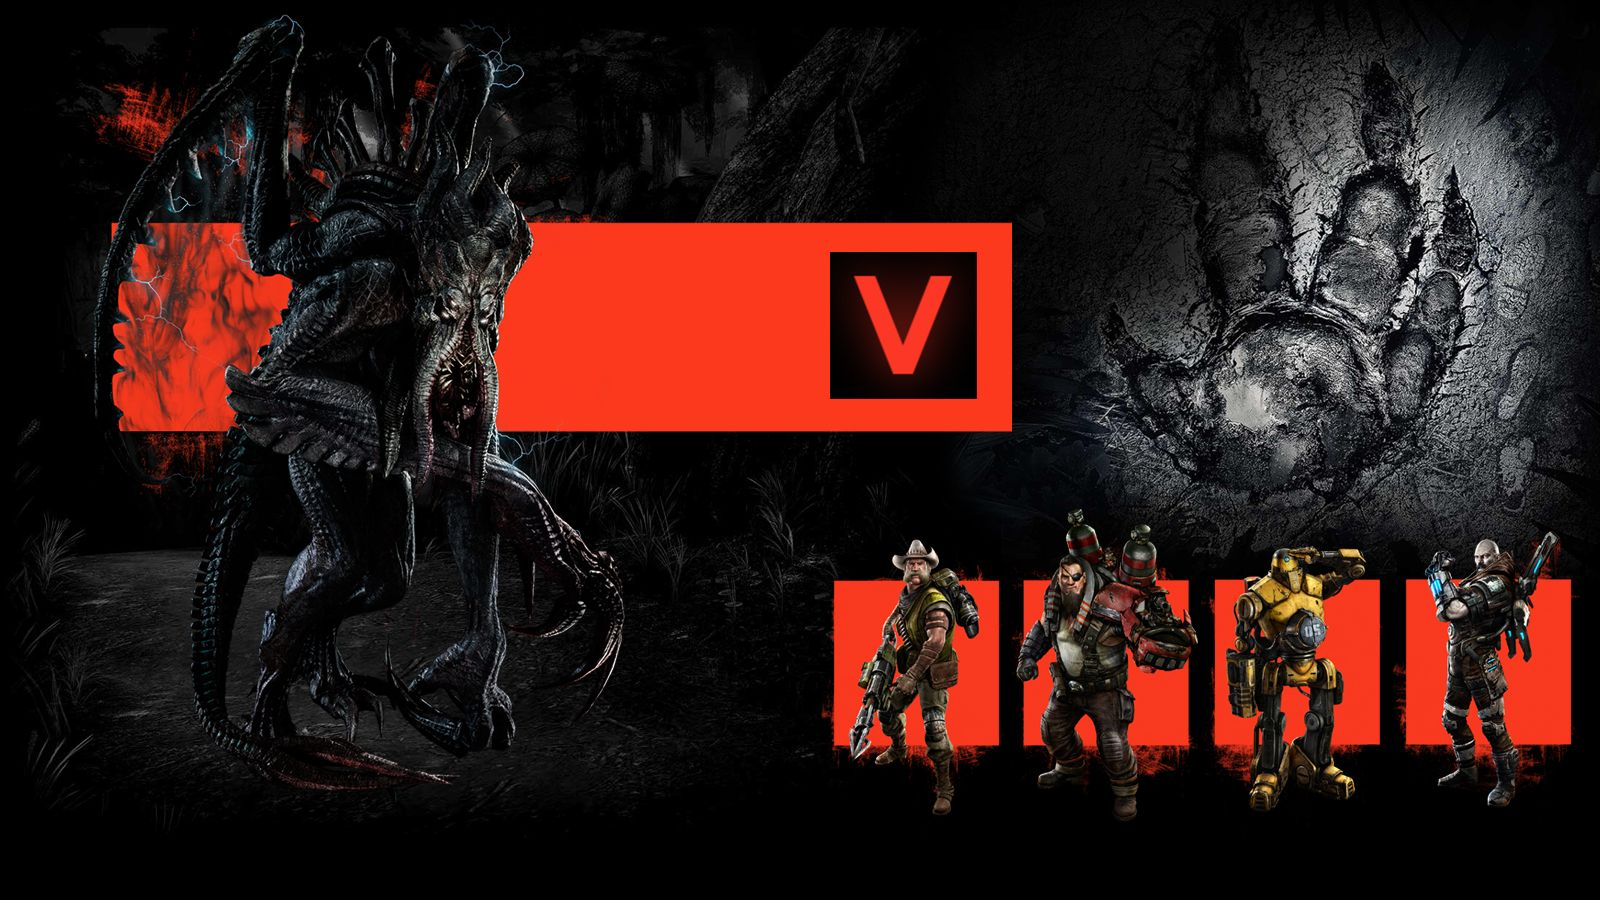 Evolve characters - roles 1v4